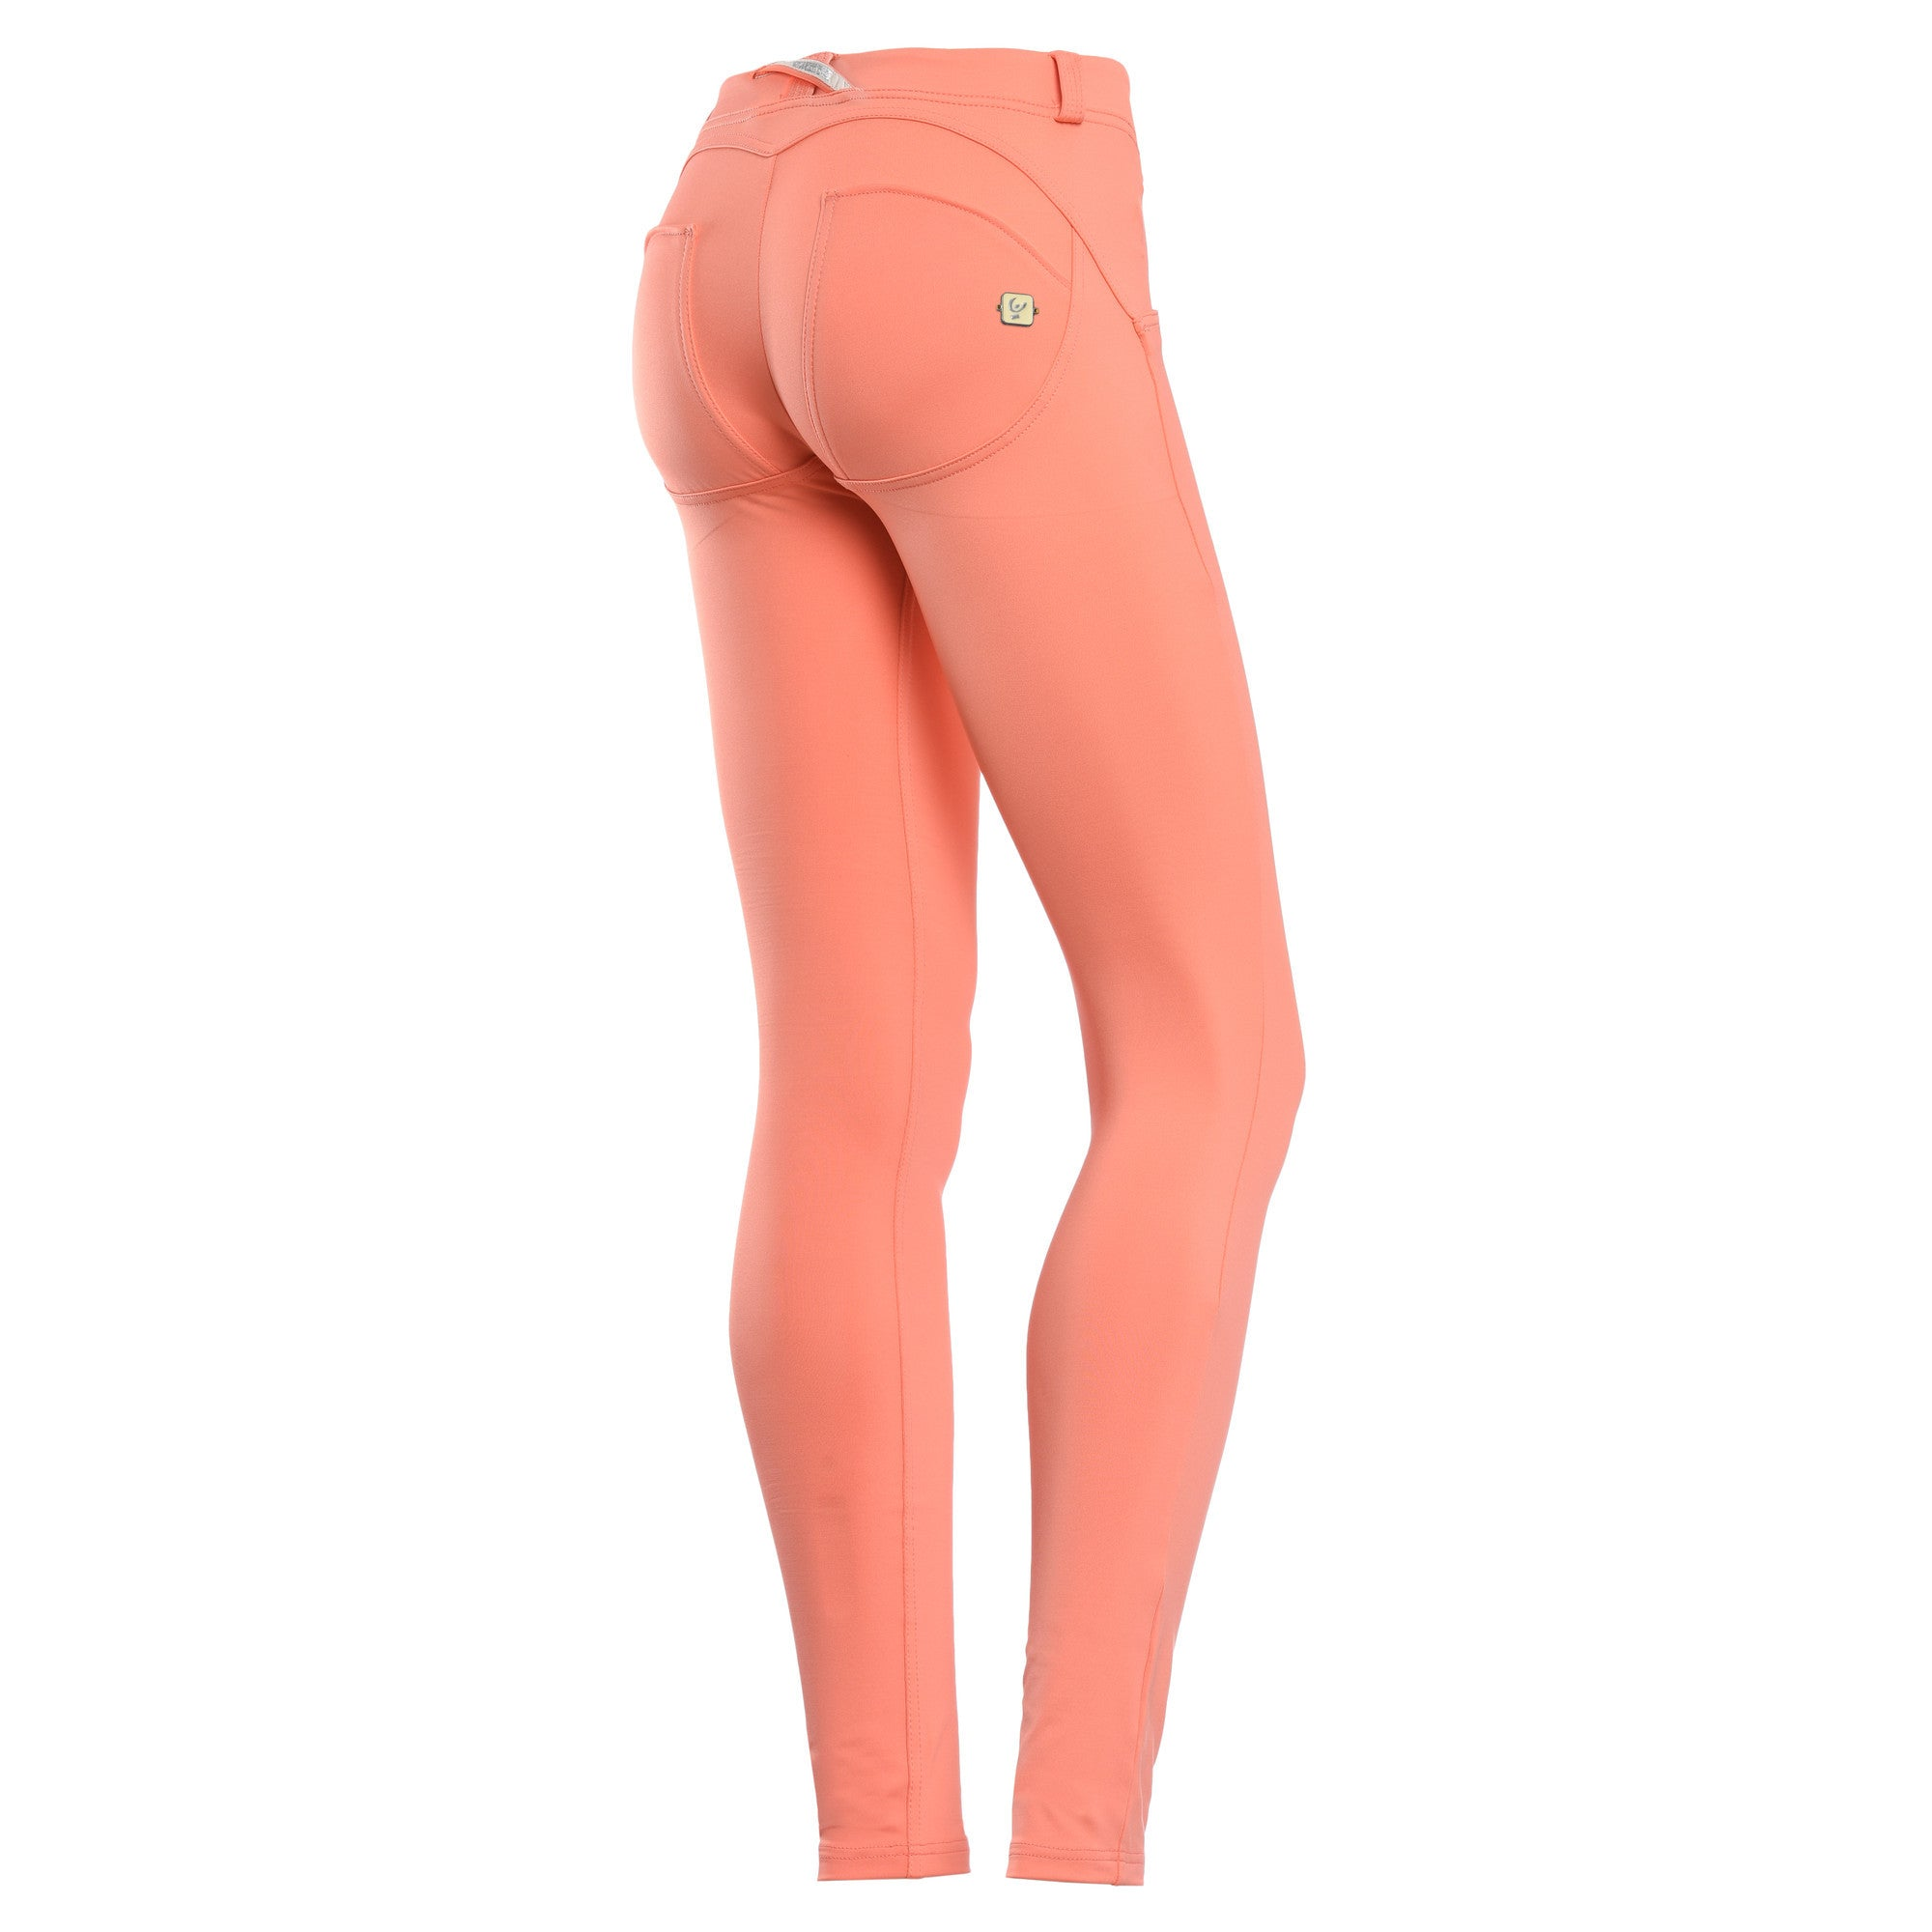 FREDDY WR.UP SKINNY D.I.W.O SATIN FINISH - Peach - LIVIFY  - 1